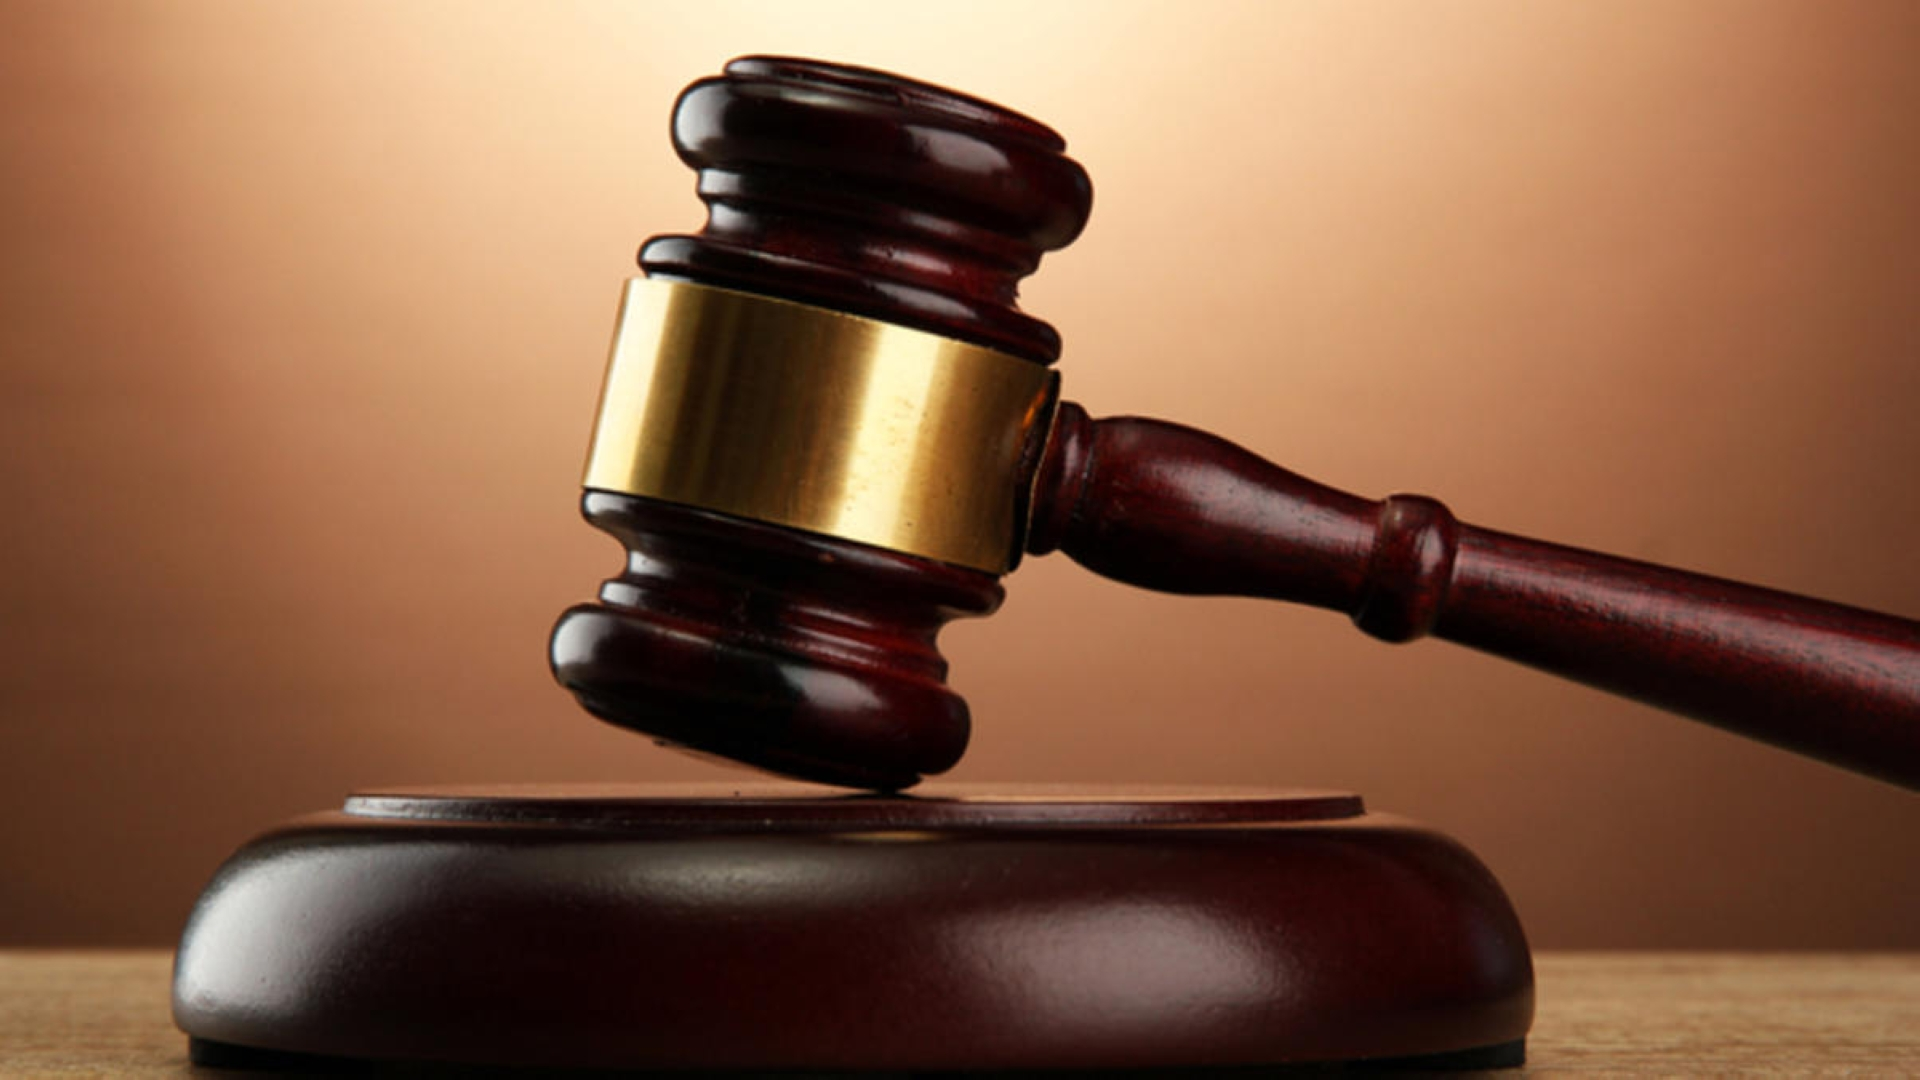 Incest bail application refused